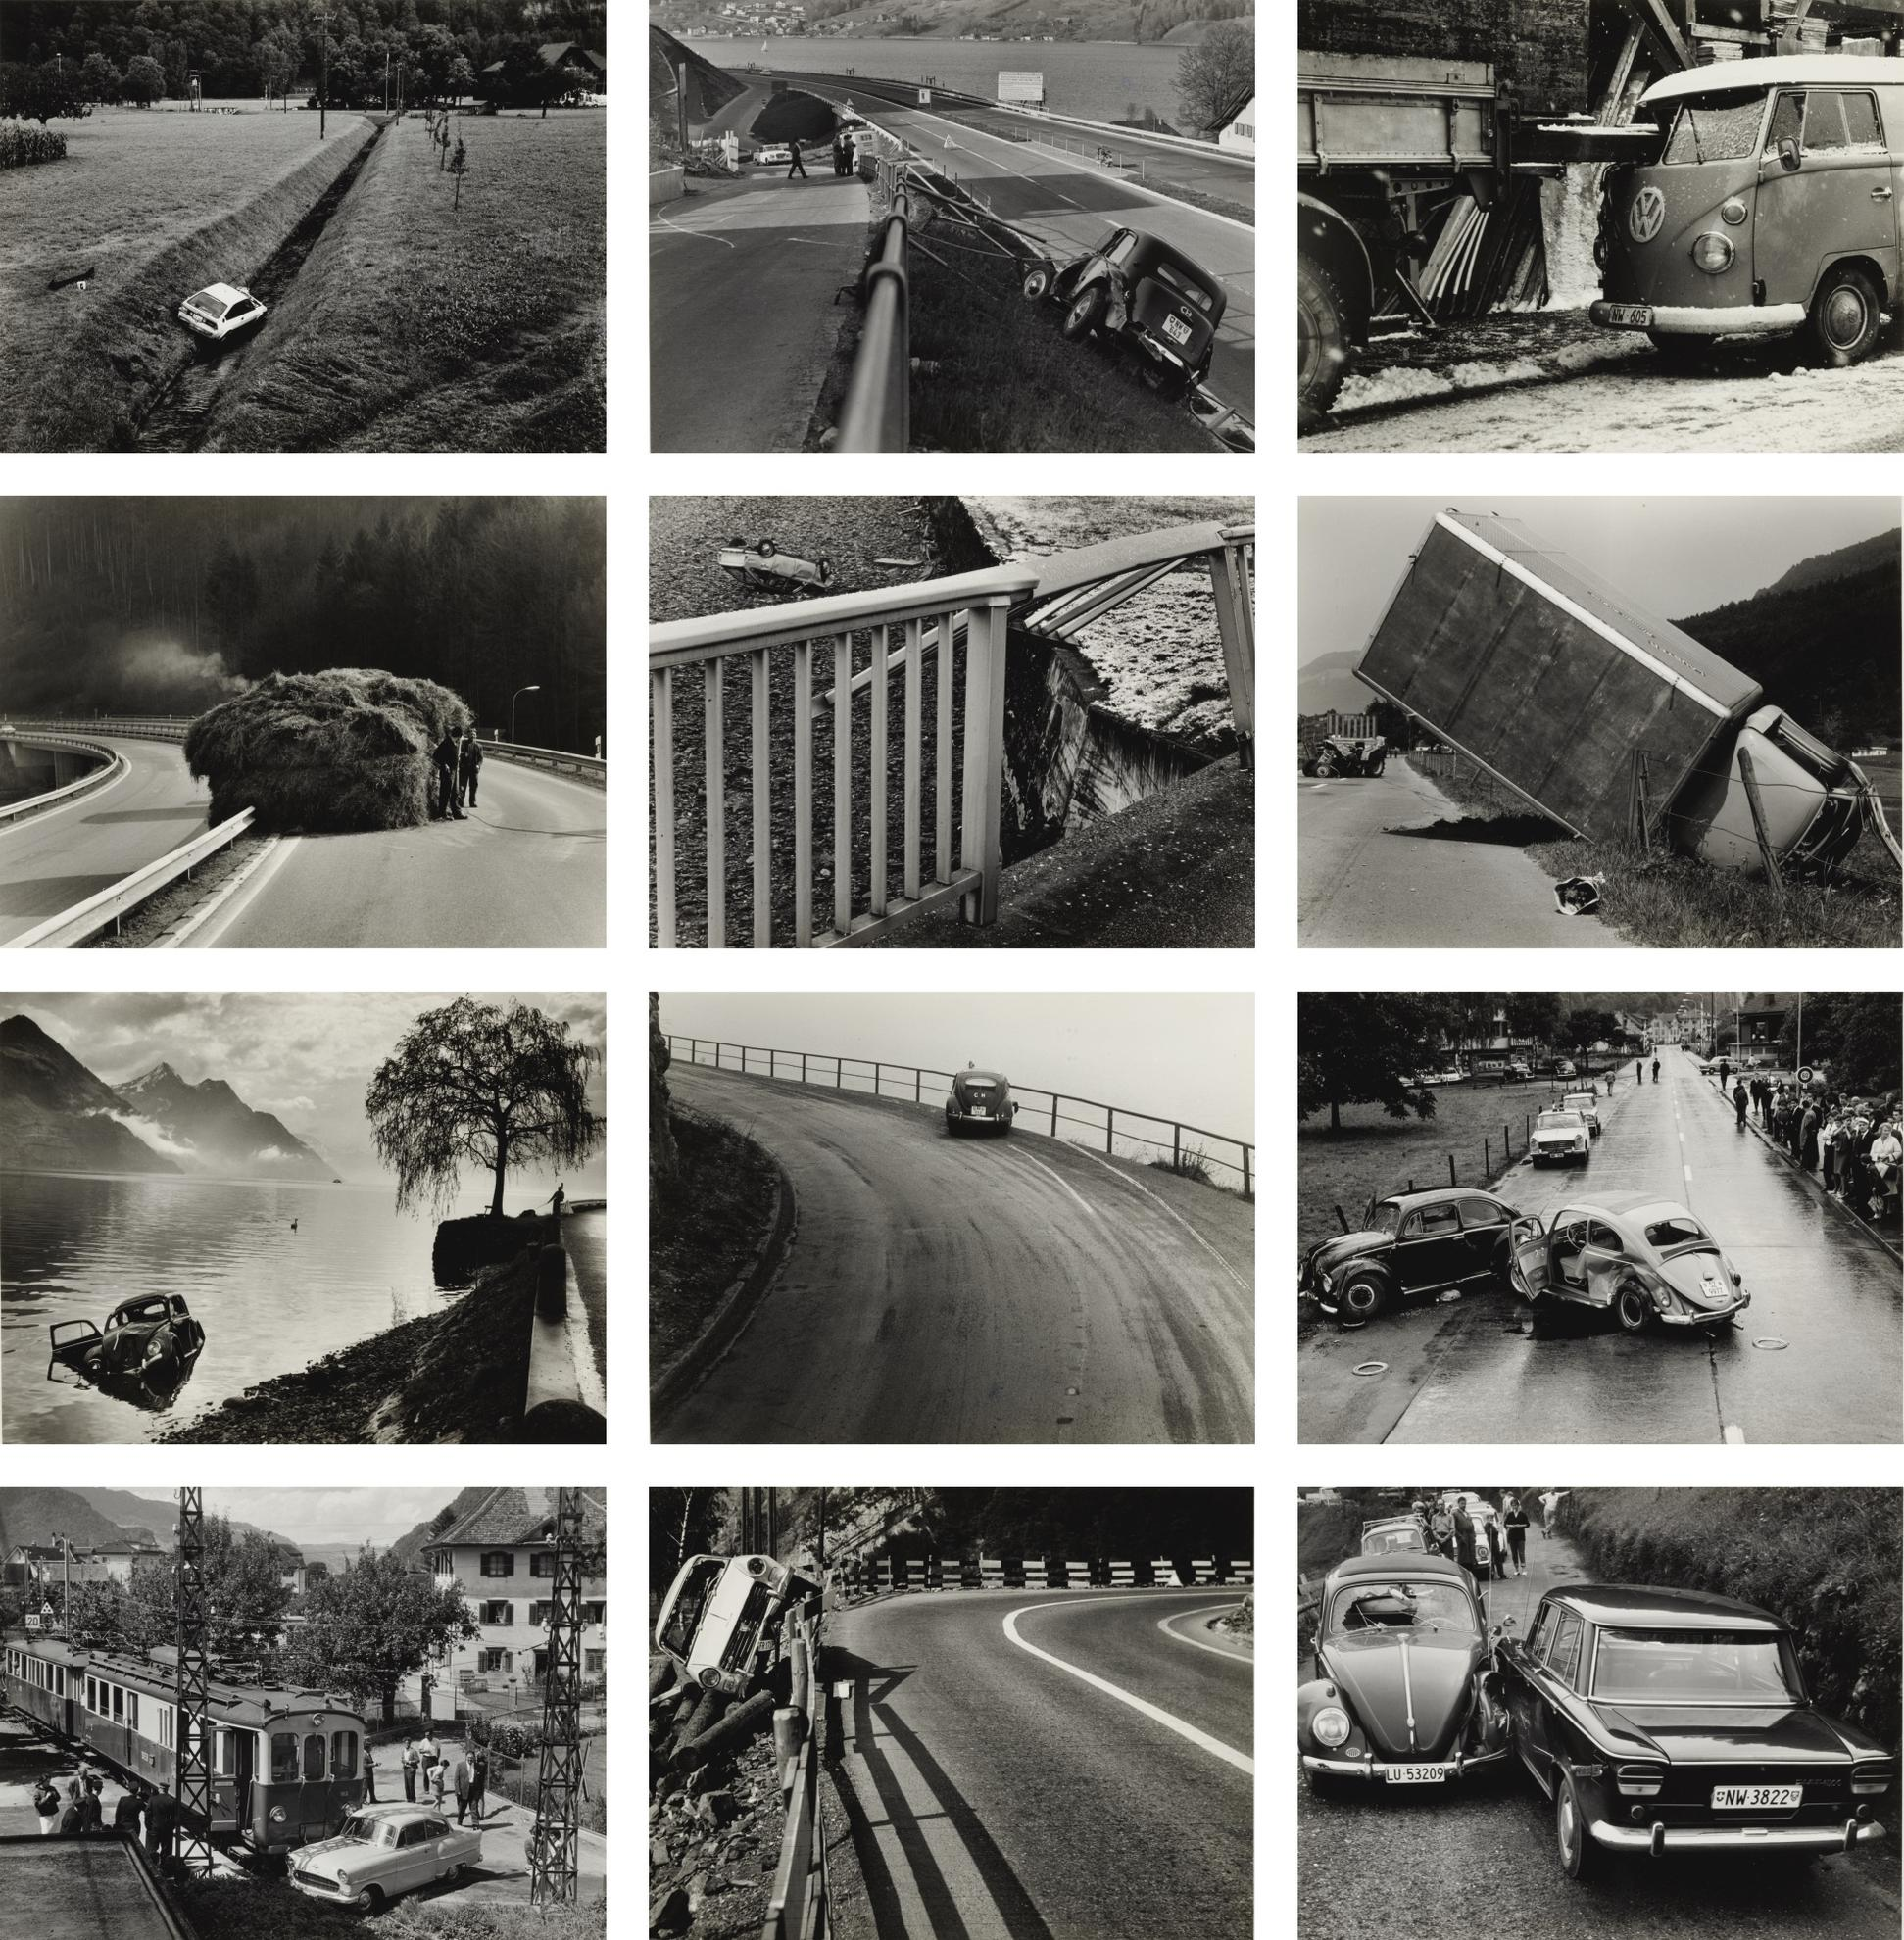 Arnold Odermatt-Selected Images Of Car Accidents-1960